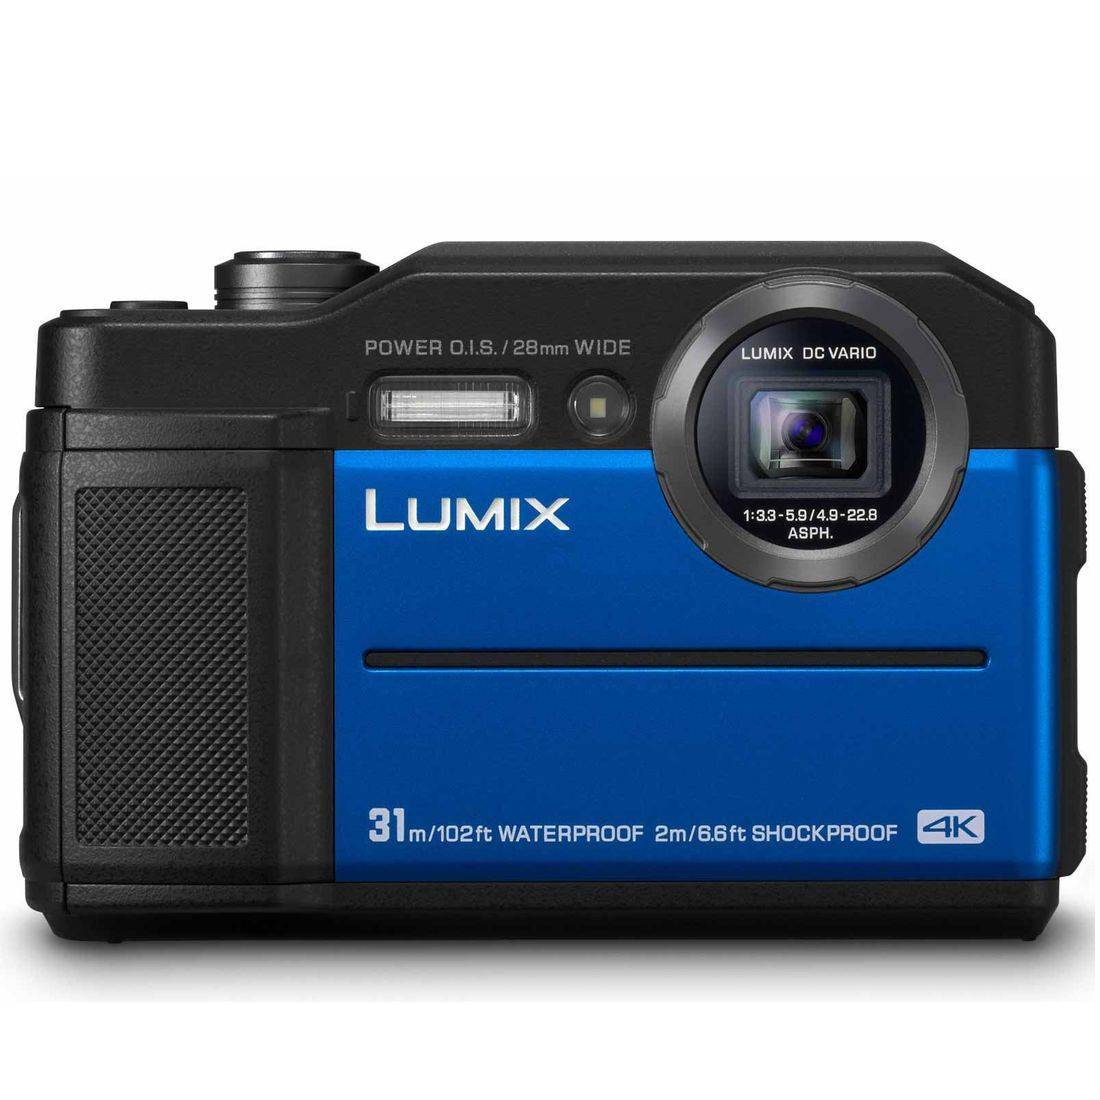 Panasonic Lumix DMC-FT7 Rugged Waterproof Digital Camera Repair